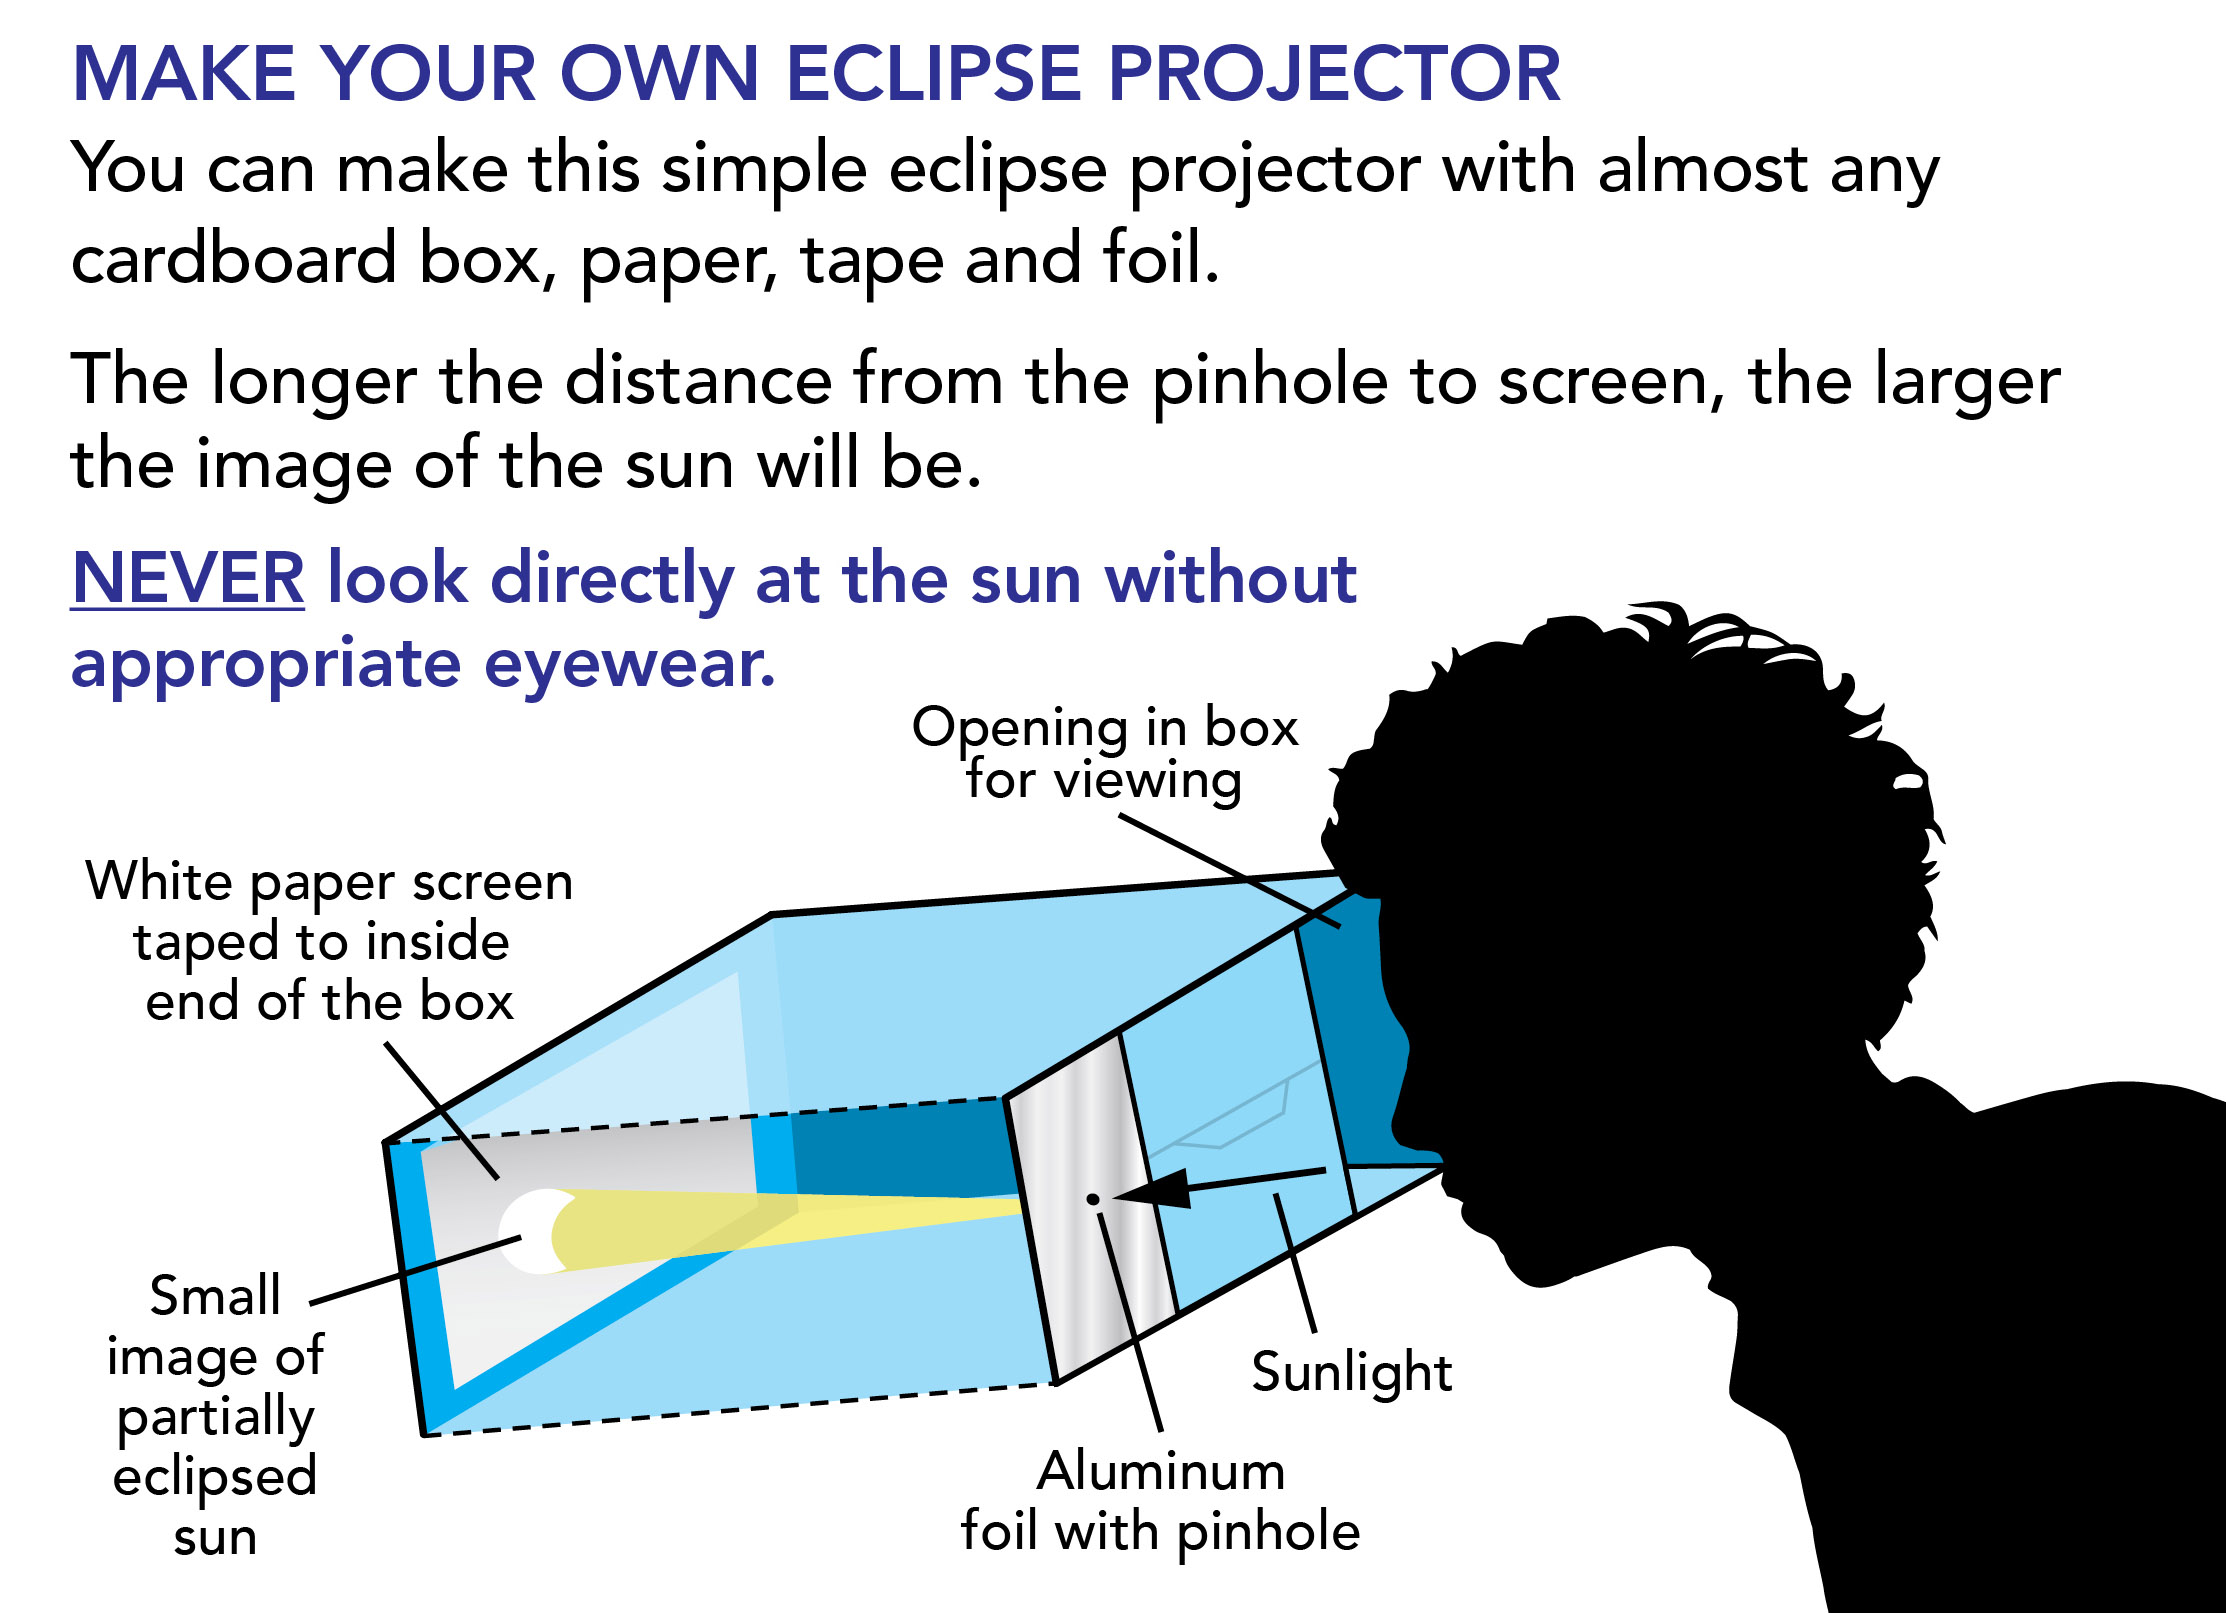 Eclipse projector